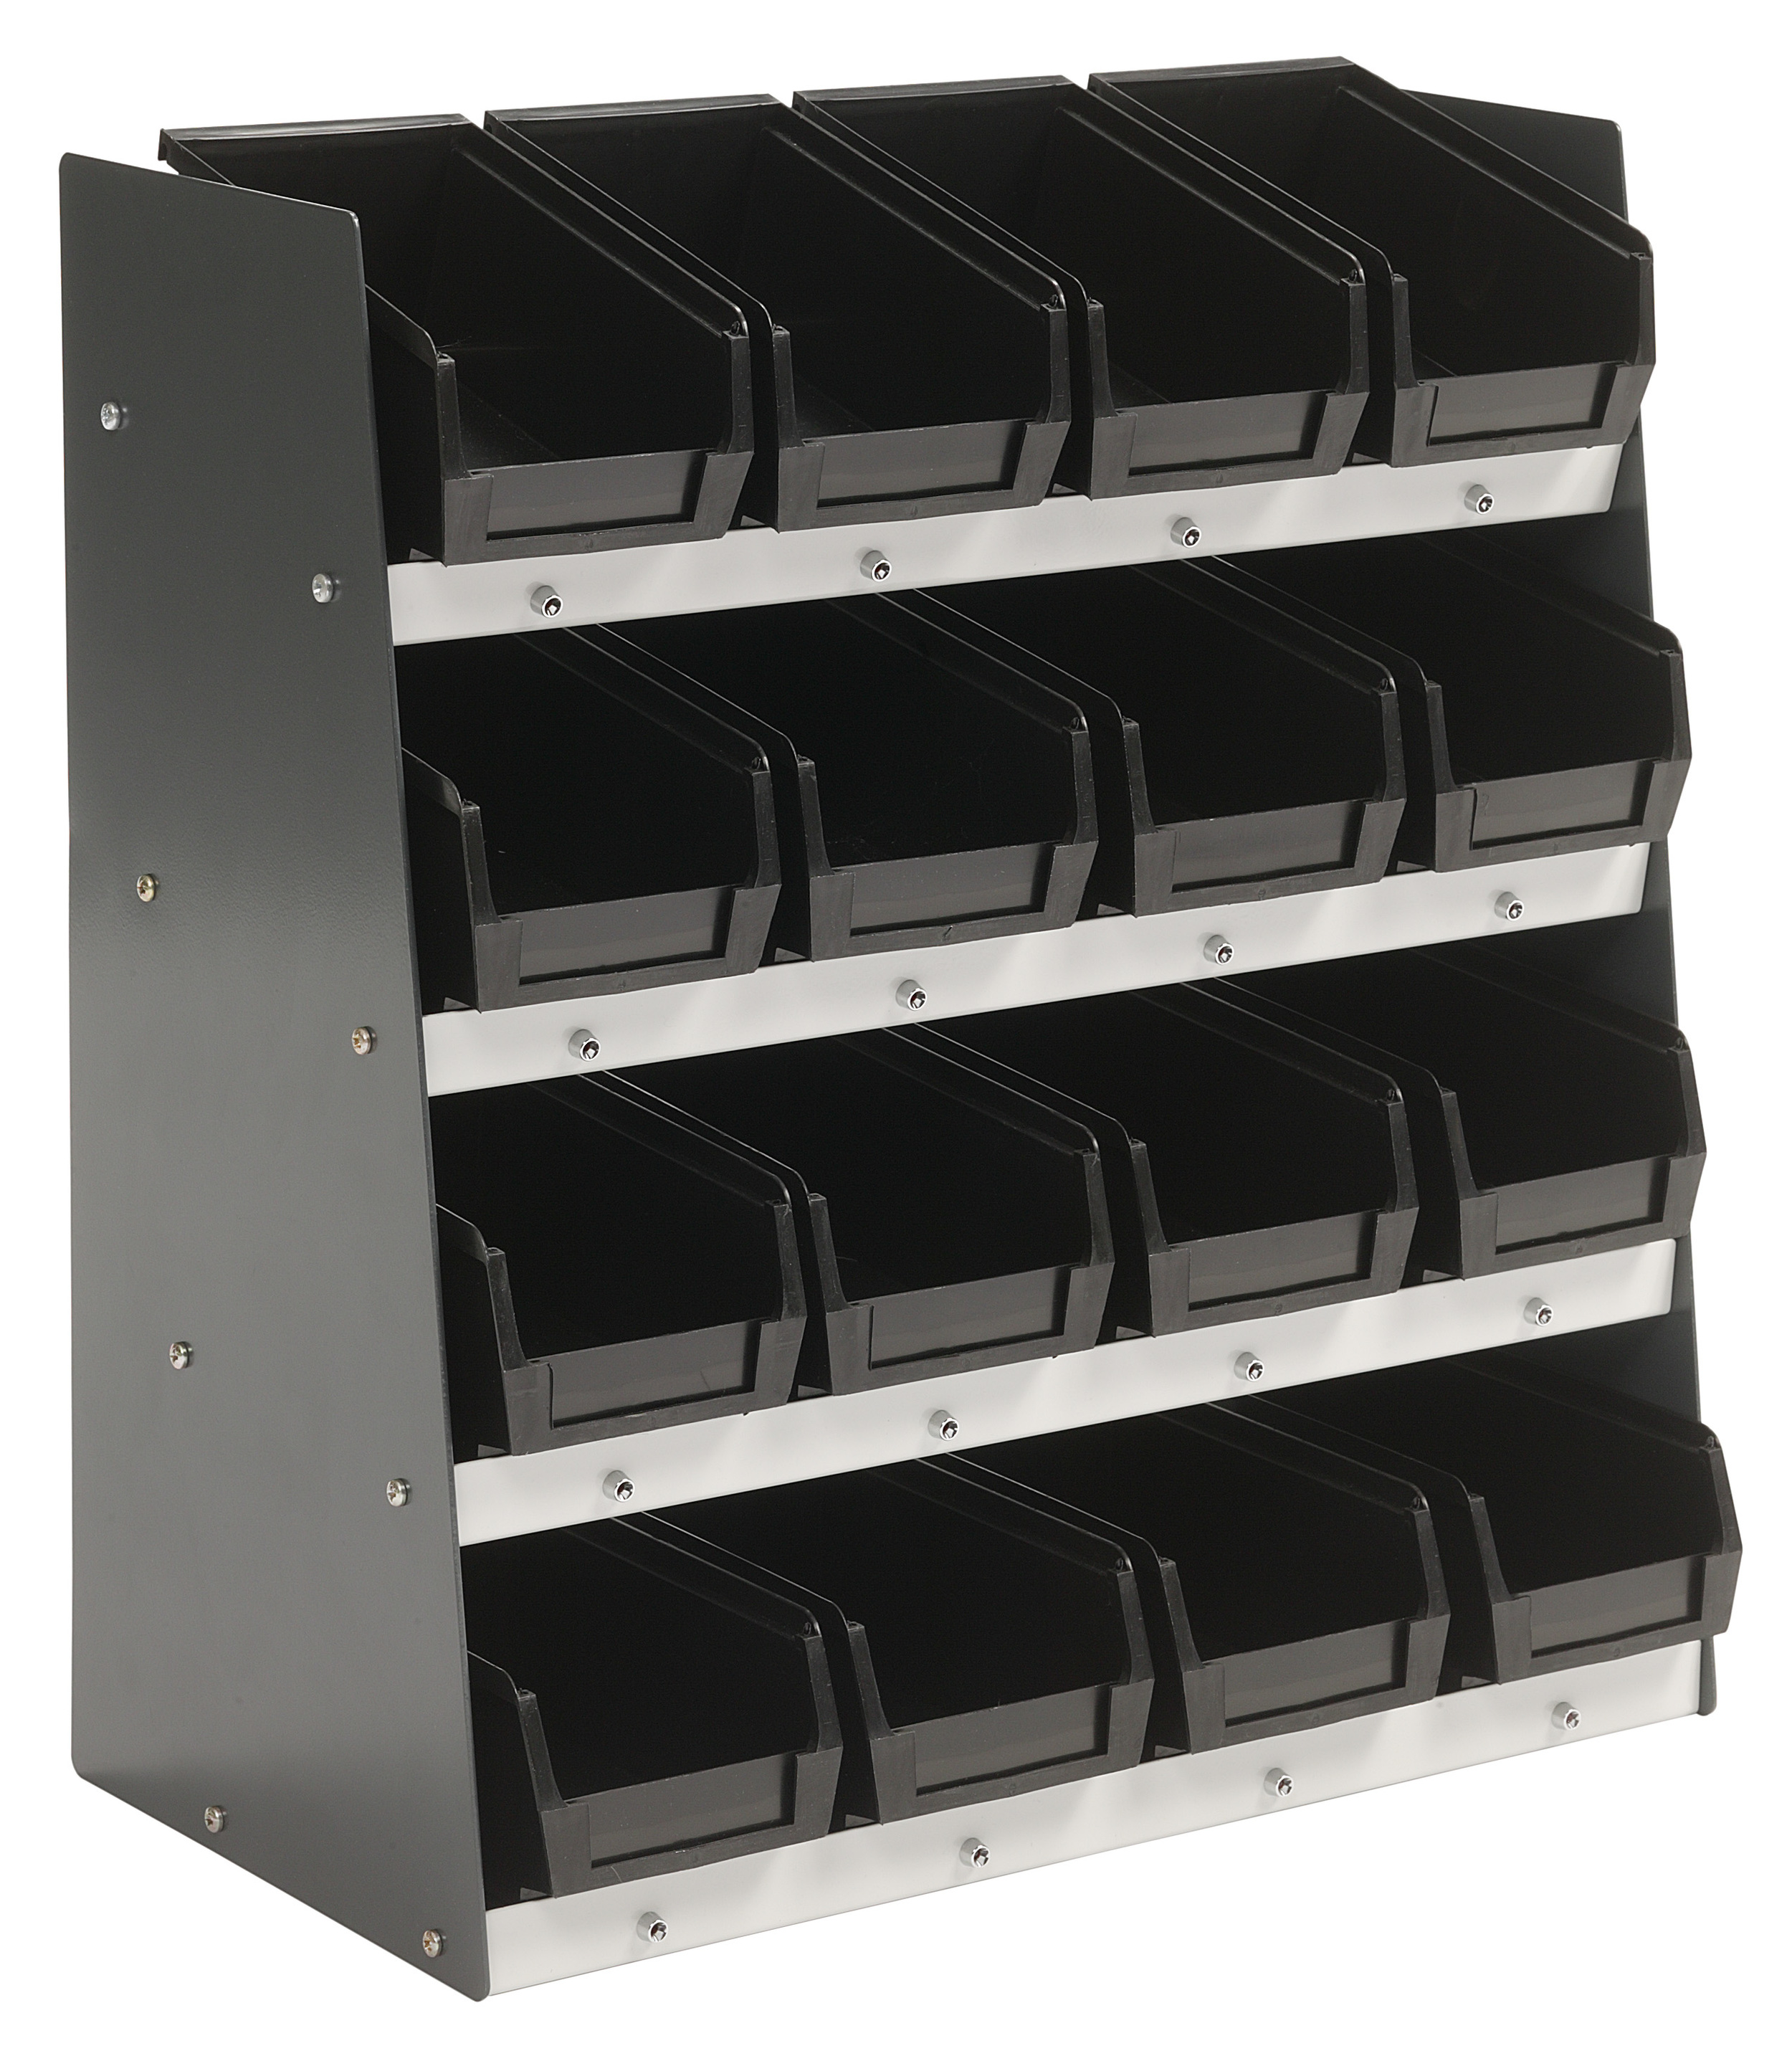 16 LED Tote Bin Array.jpg